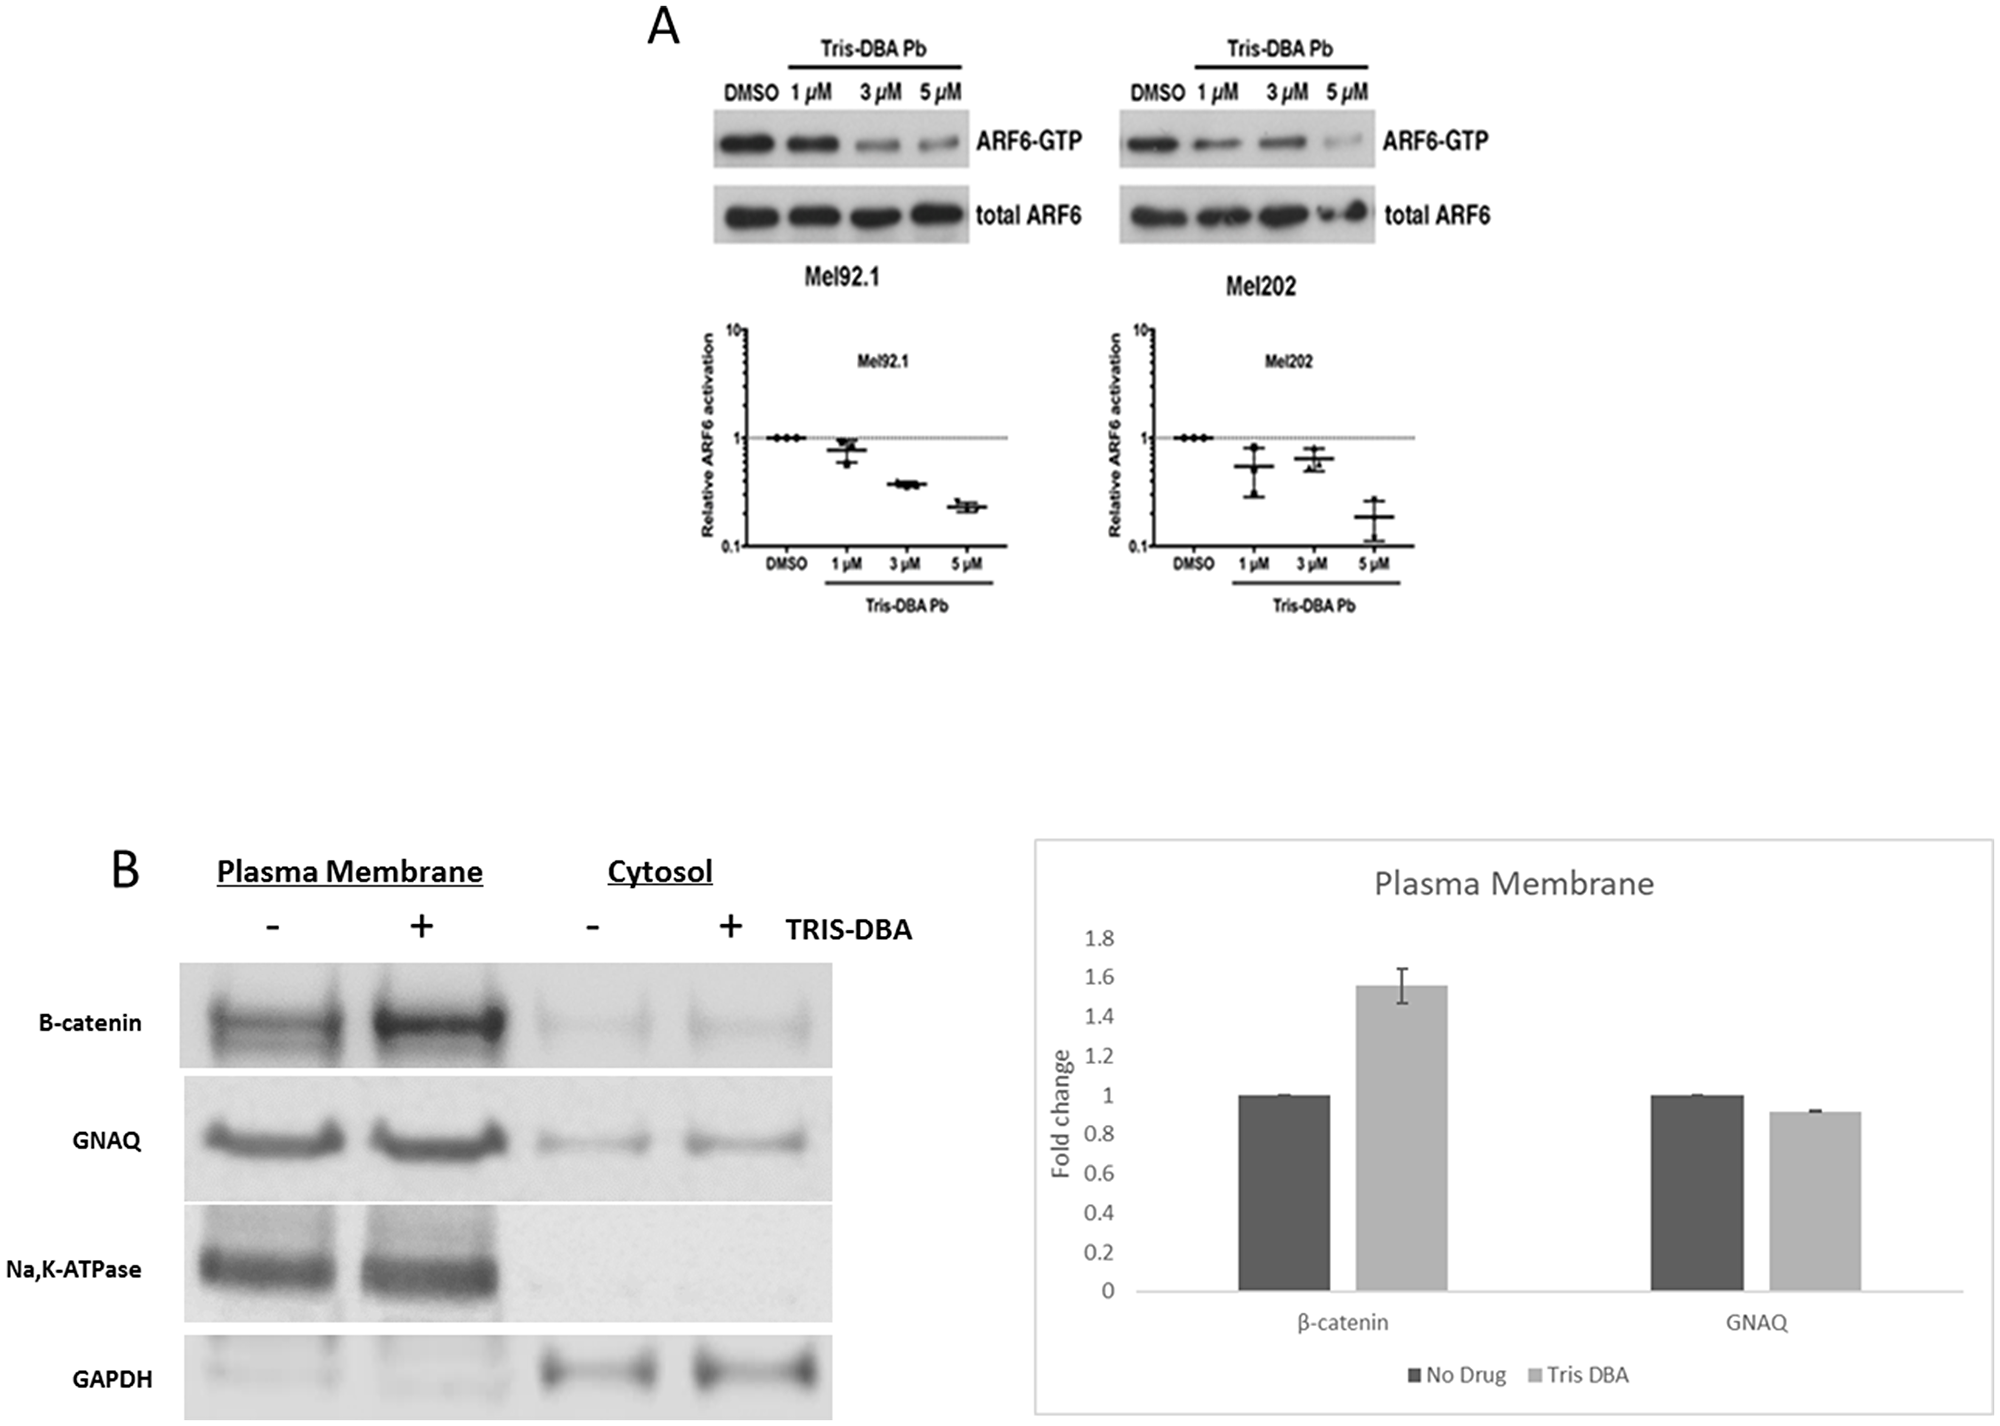 Tris DBA inhibits ARF6 activity and localizes B-catenin to plasma membrane.